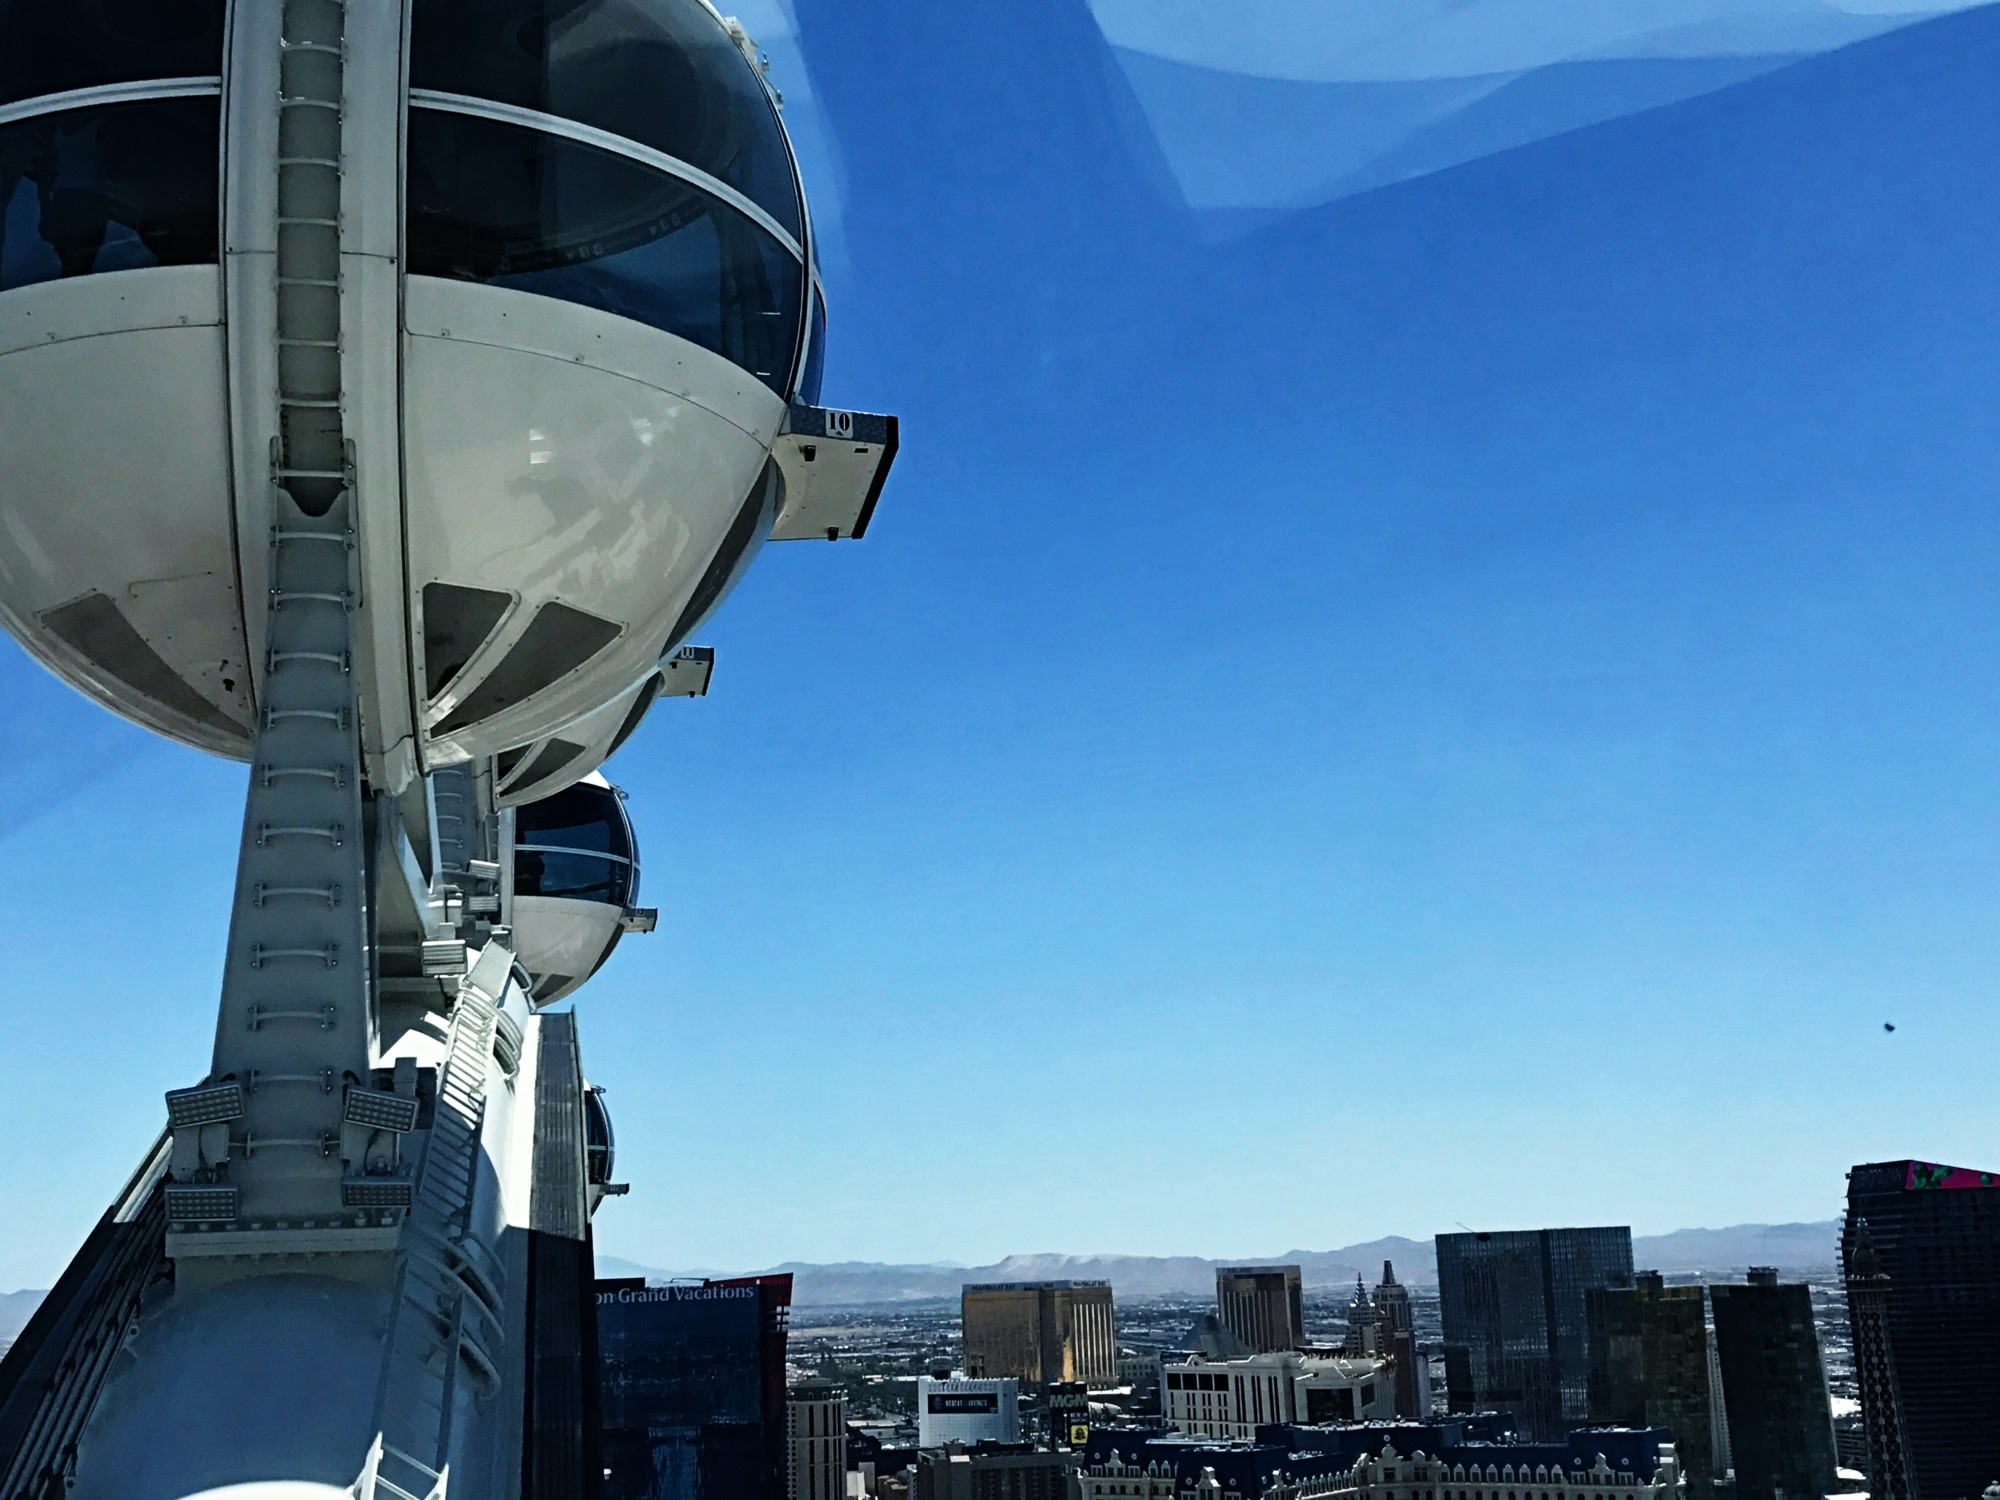 High Roller Observation Wheel in Las Vegas